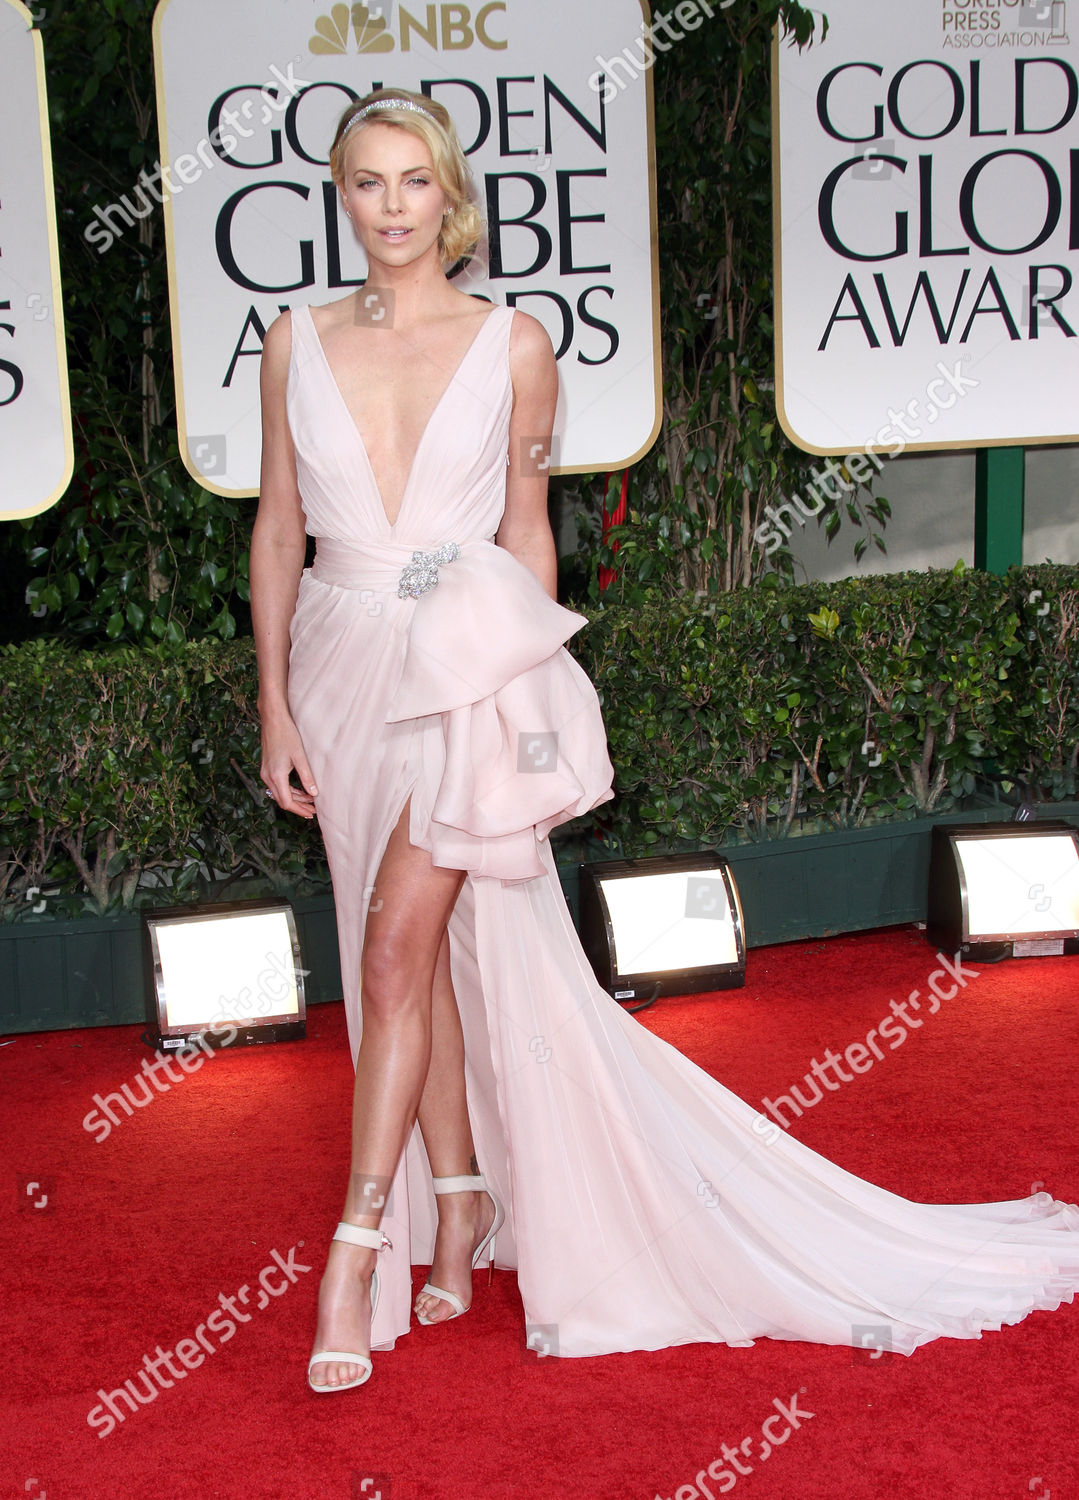 274ce78a34a80 Stock photo of The 69th Annual Golden Globe Awards, Arrivals, Los Angeles,  America